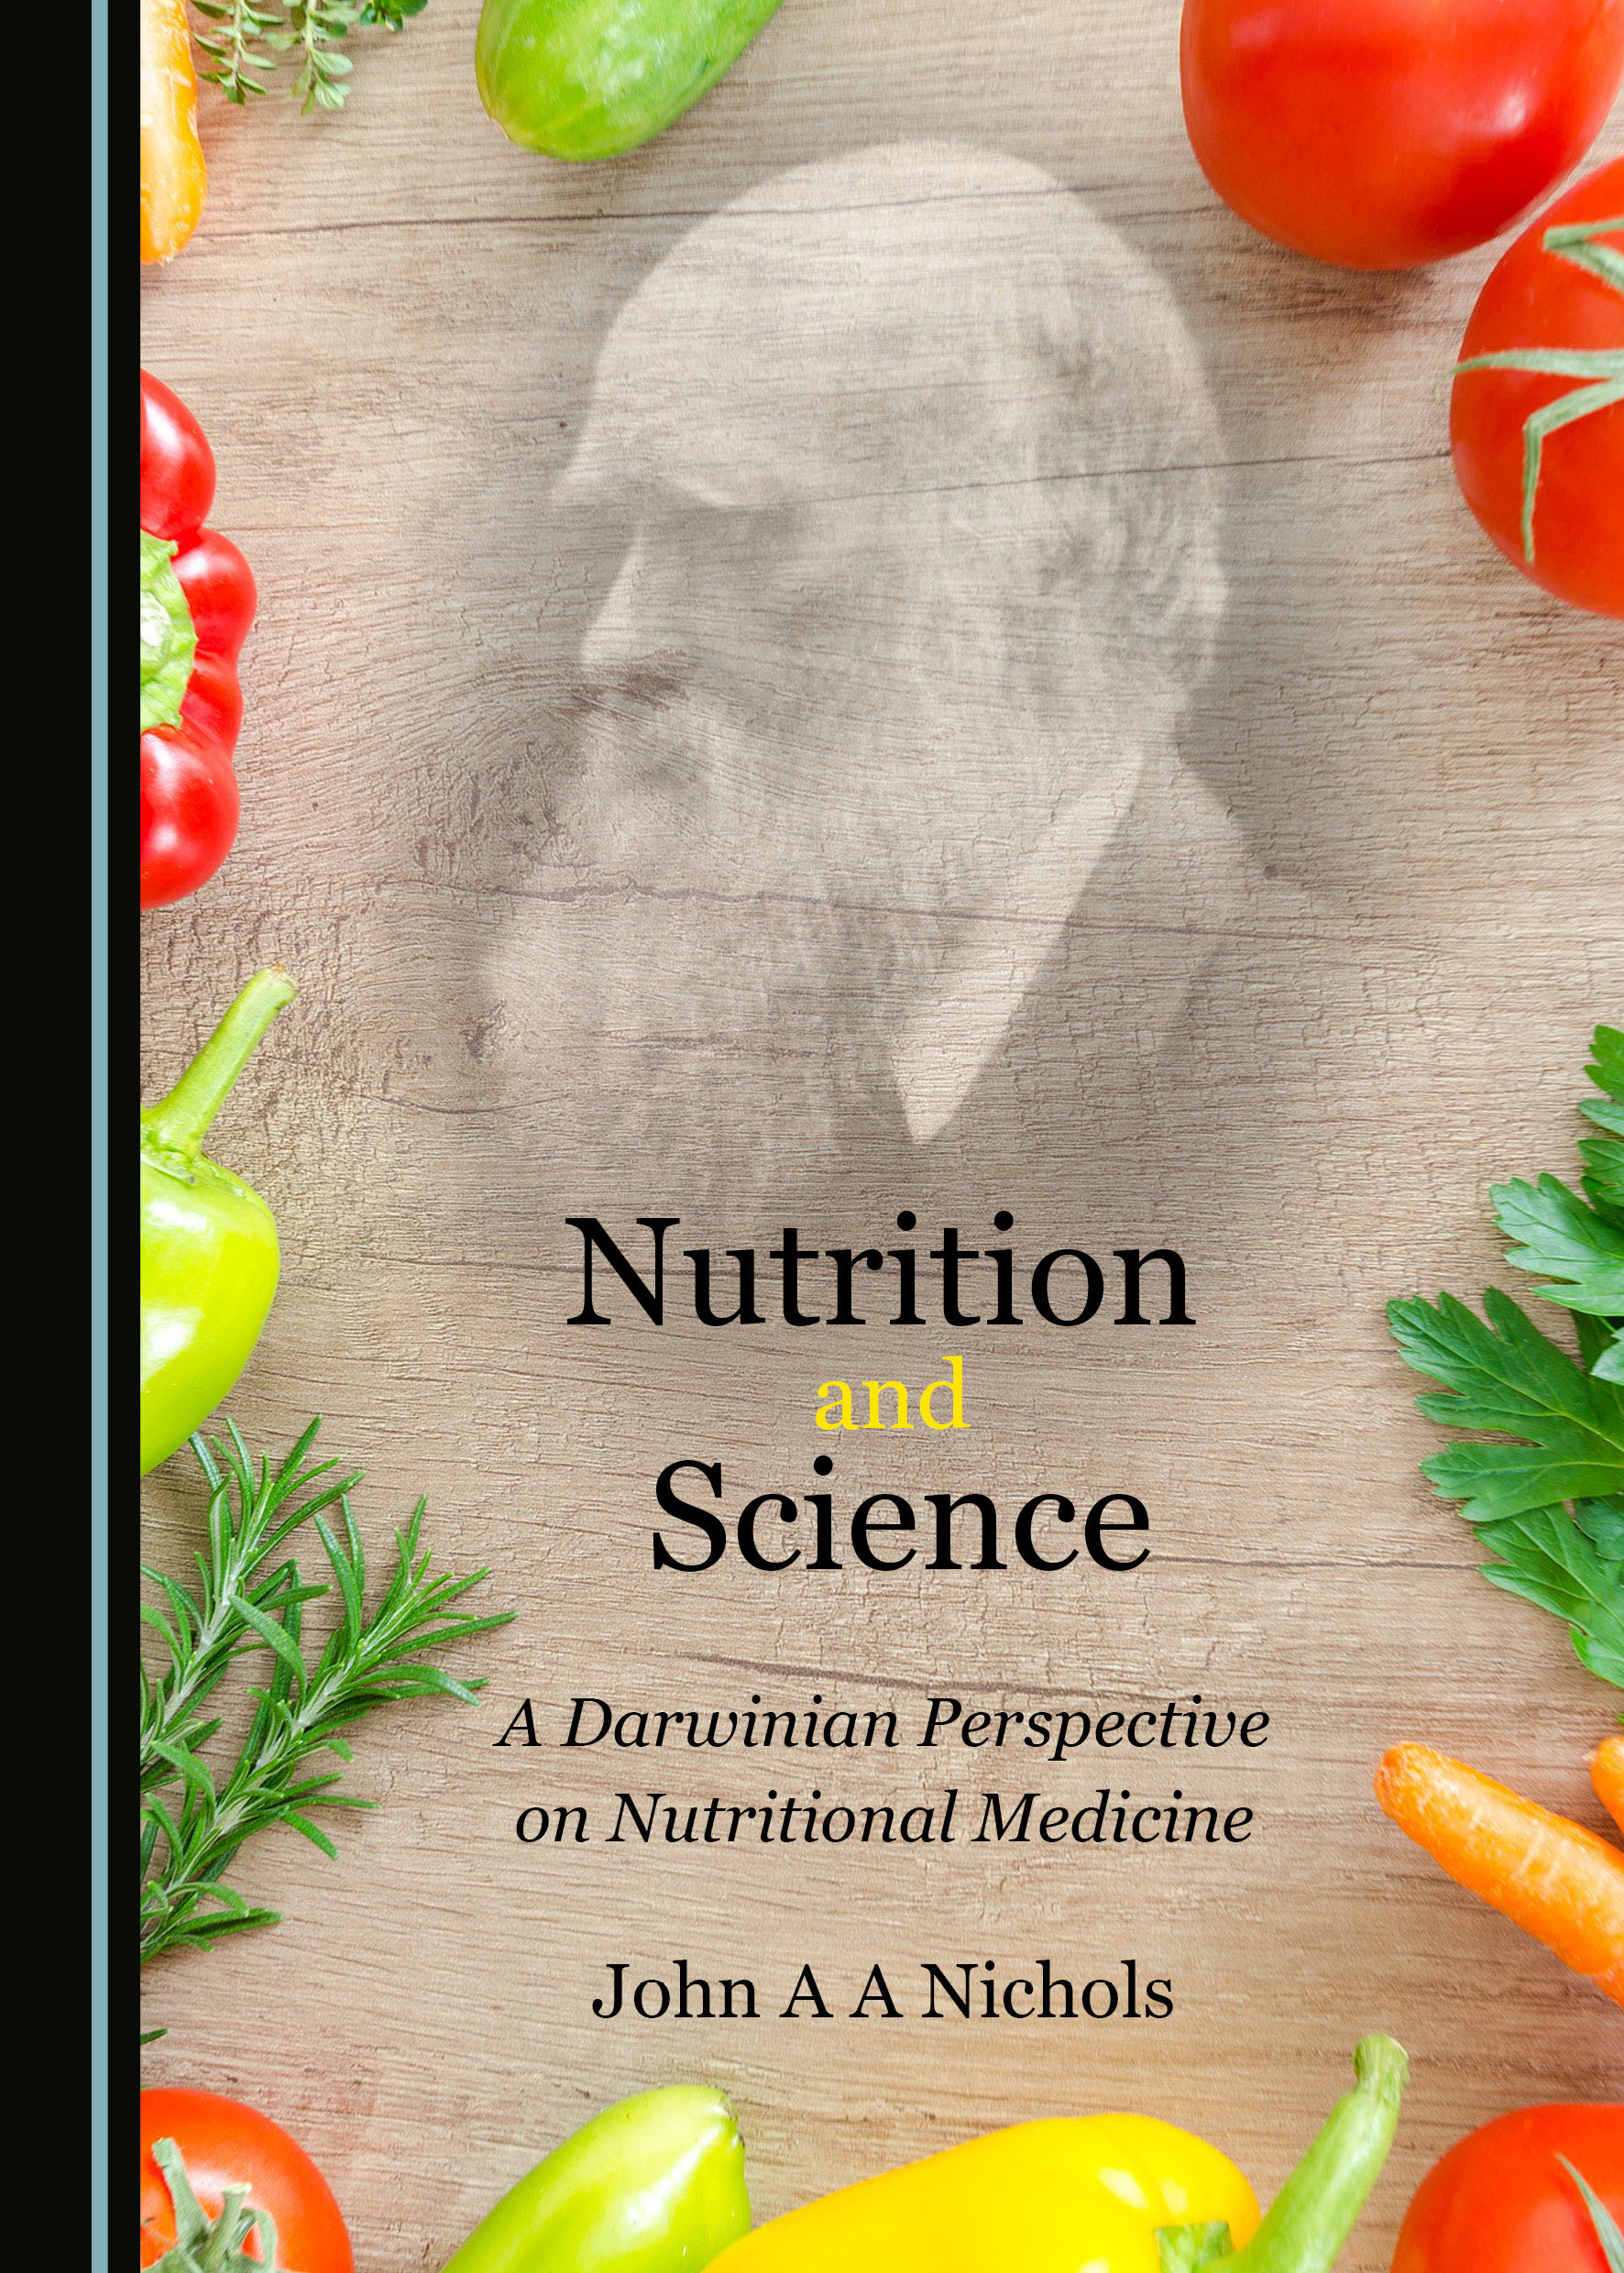 Nutrition and Science: A Darwinian Perspective on Nutritional Medicine